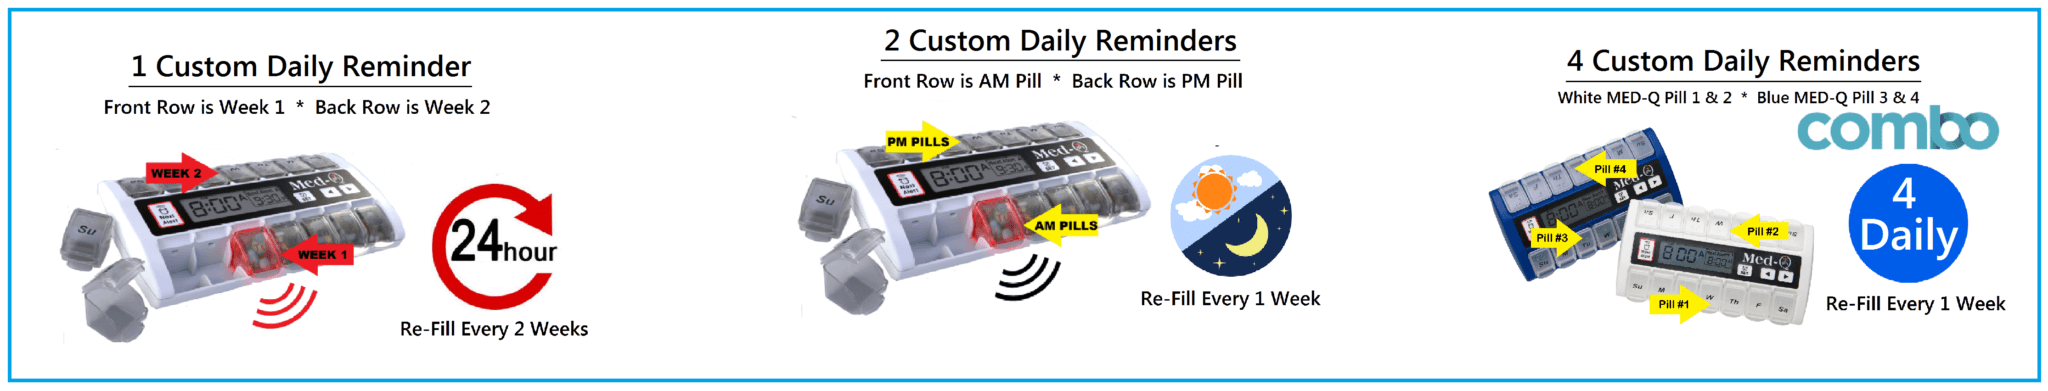 https://medqpillbox.com/7-day-pill-organizer-with-removable-daily-pill-boxes-2/